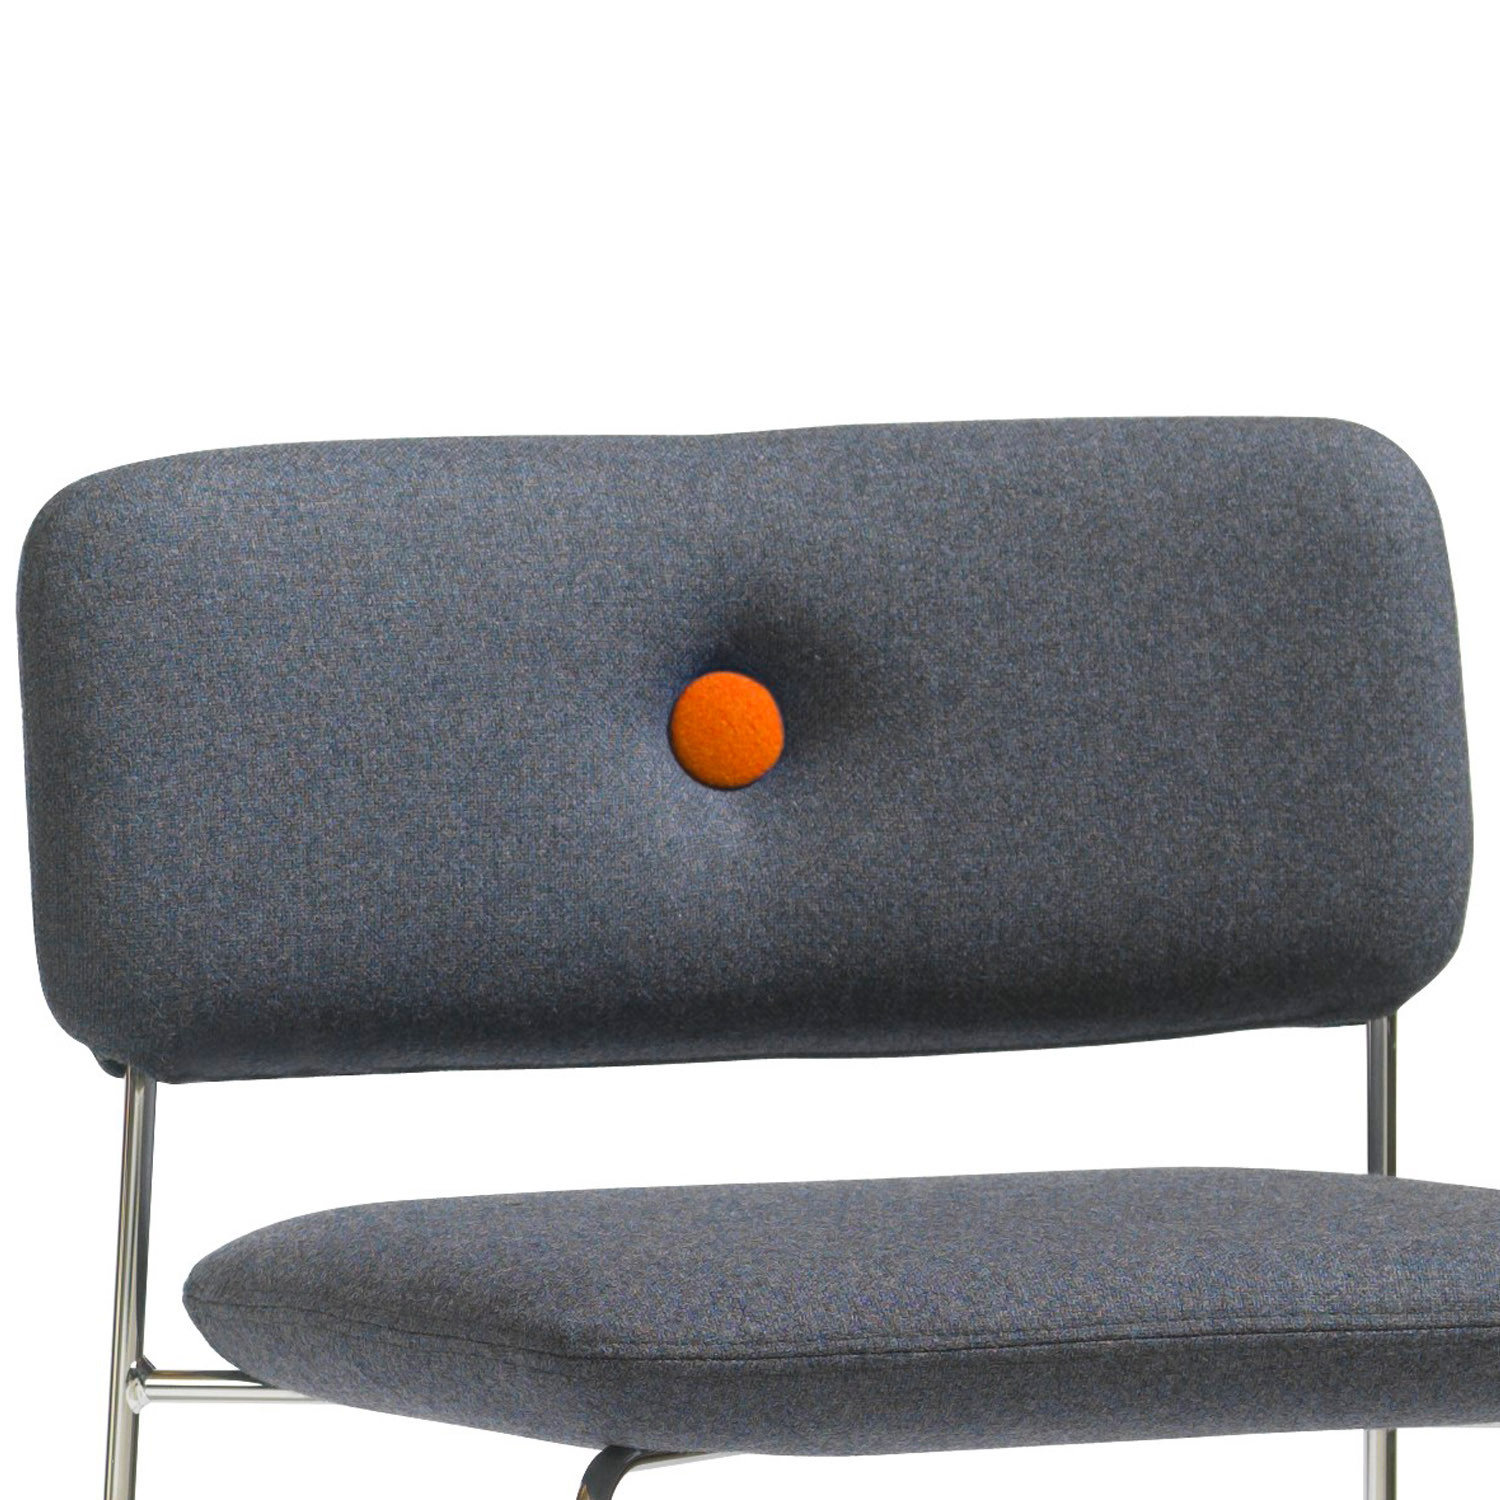 Dundra Seating S72 by Stefan Borselius